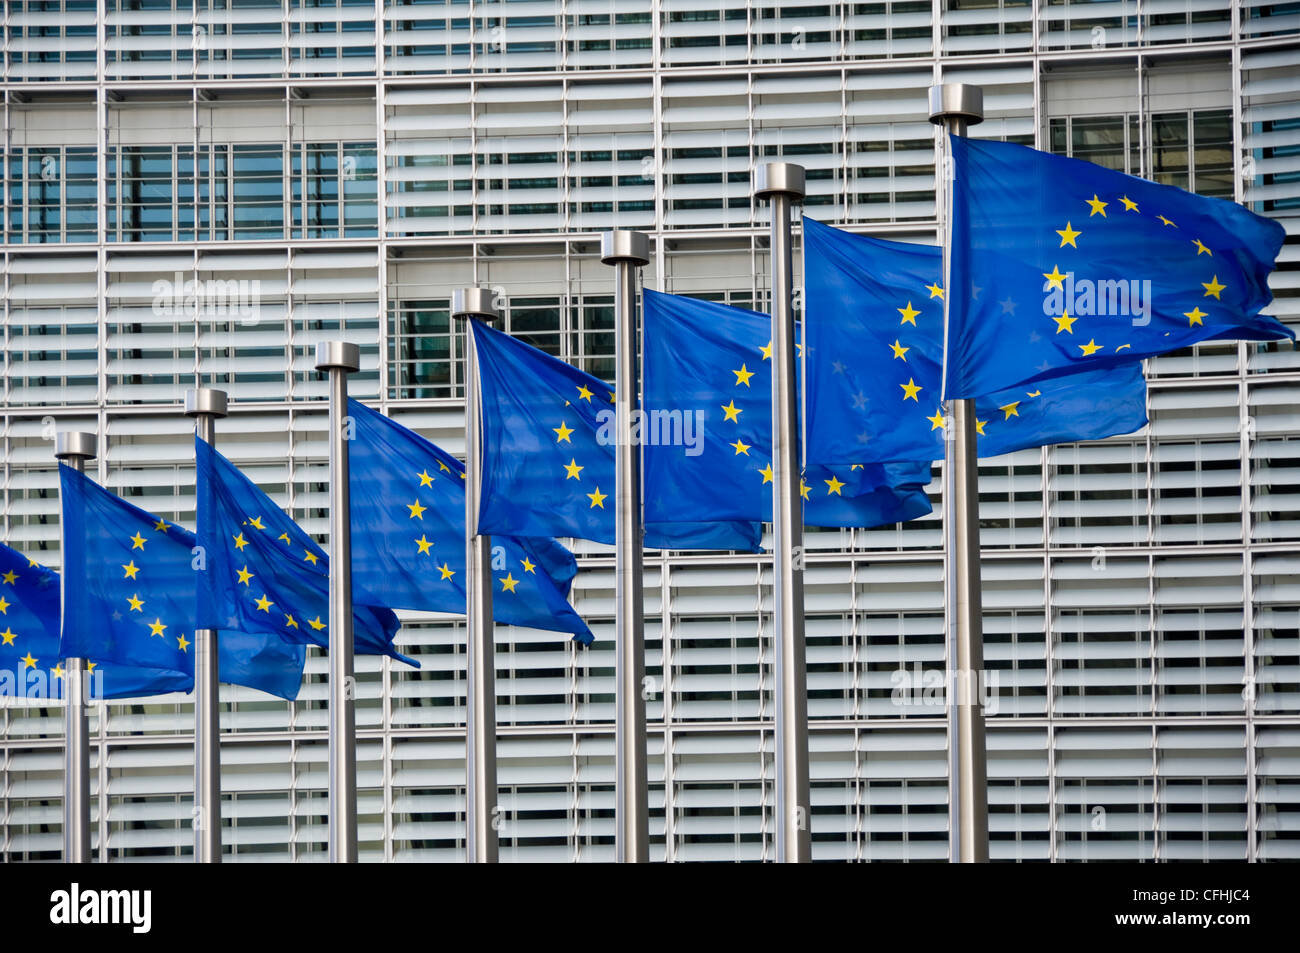 Horizontal close up of distinctive European Union flags at fullmast flying outside the Berlaymont building in central - Stock Image